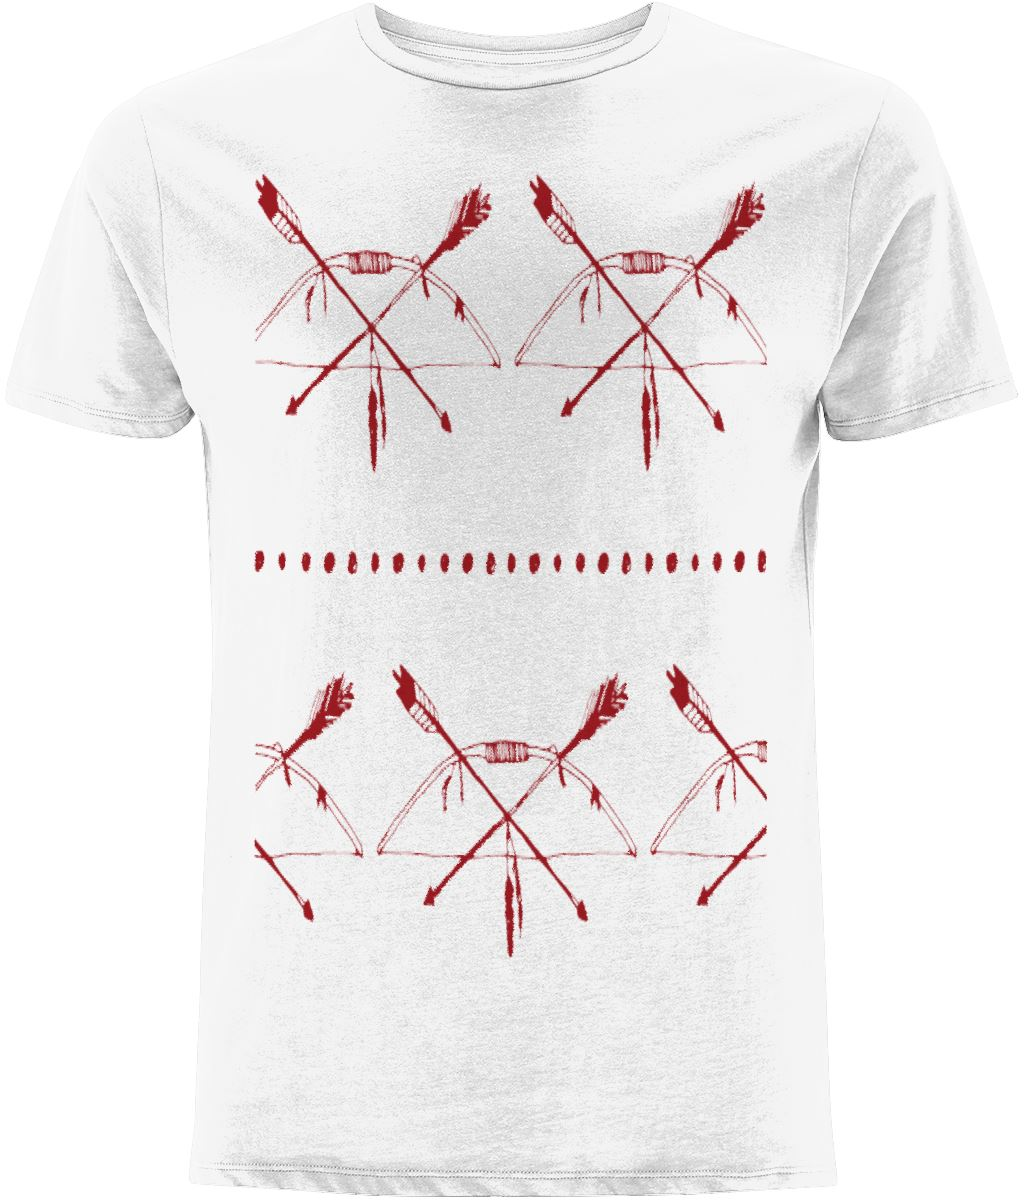 Red Arrow Pattern T-shirt Clothing IndianBelieves White X-Small